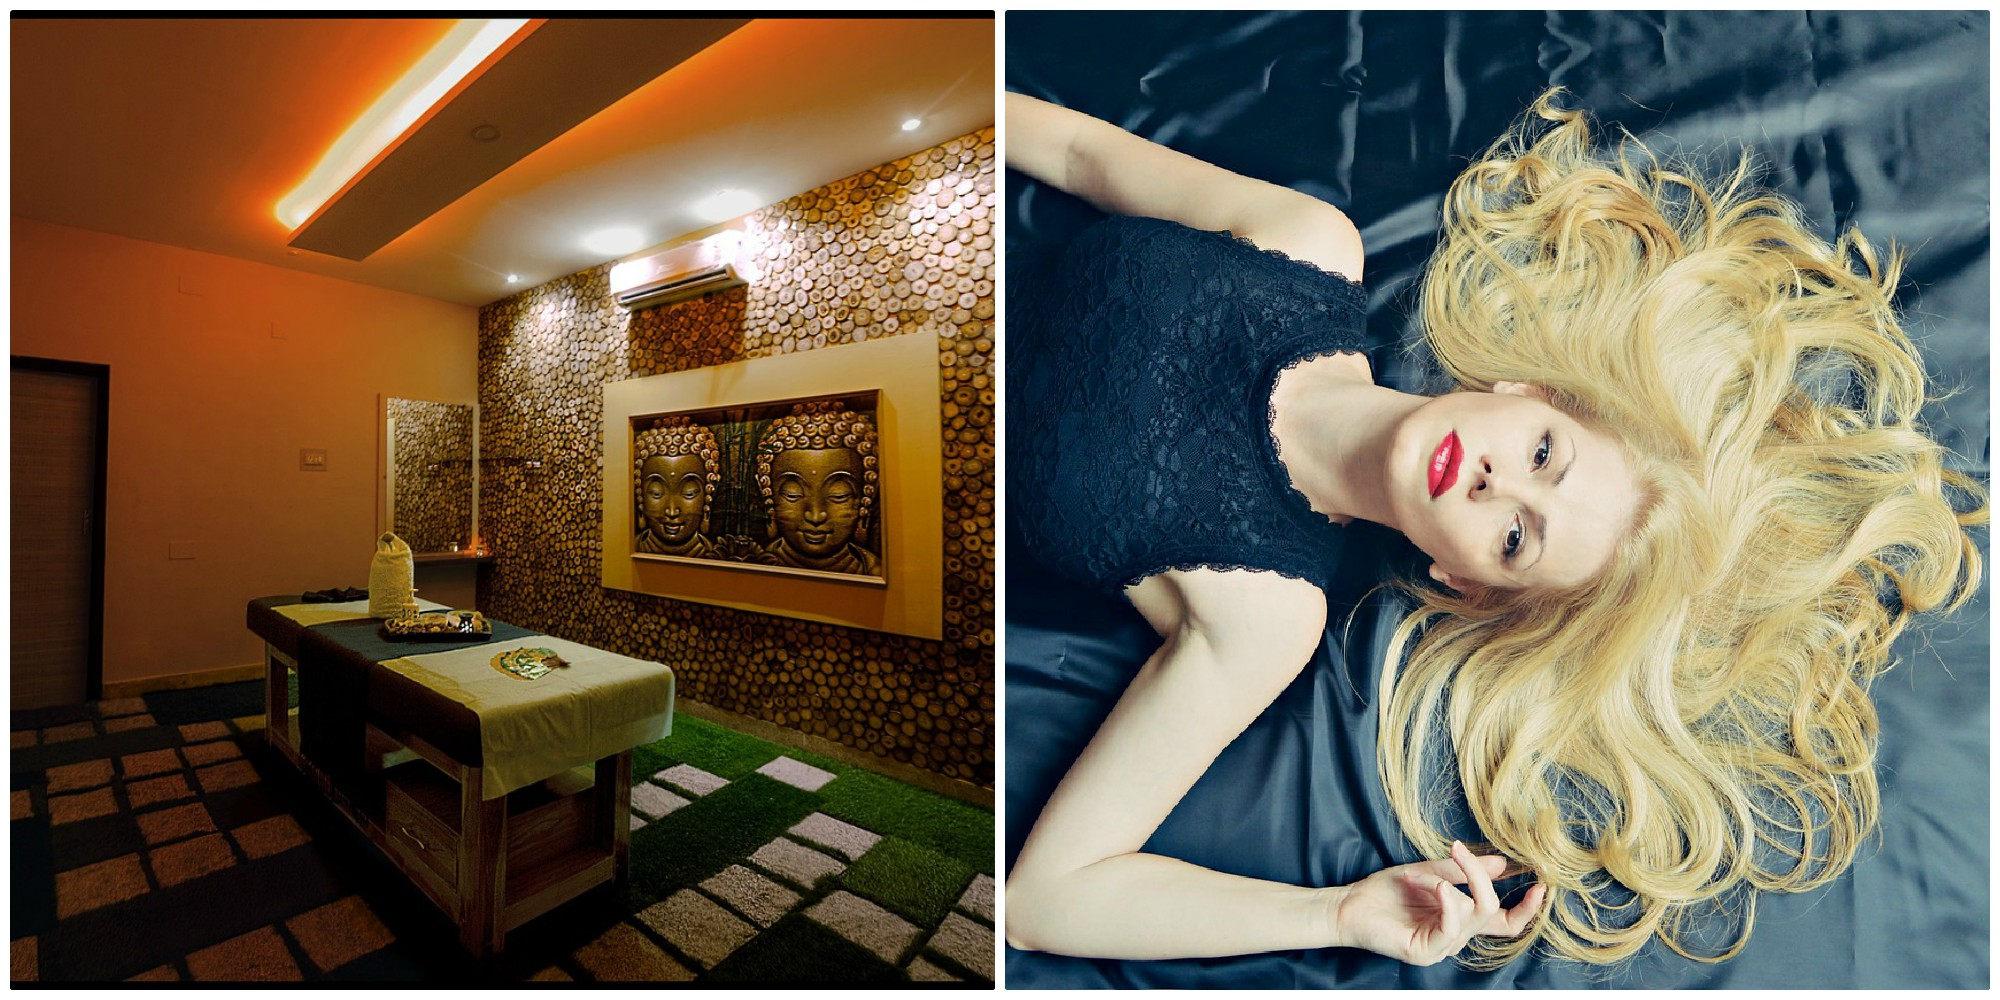 Massage salon and a blond, long-haired woman lies on blue bedspread.